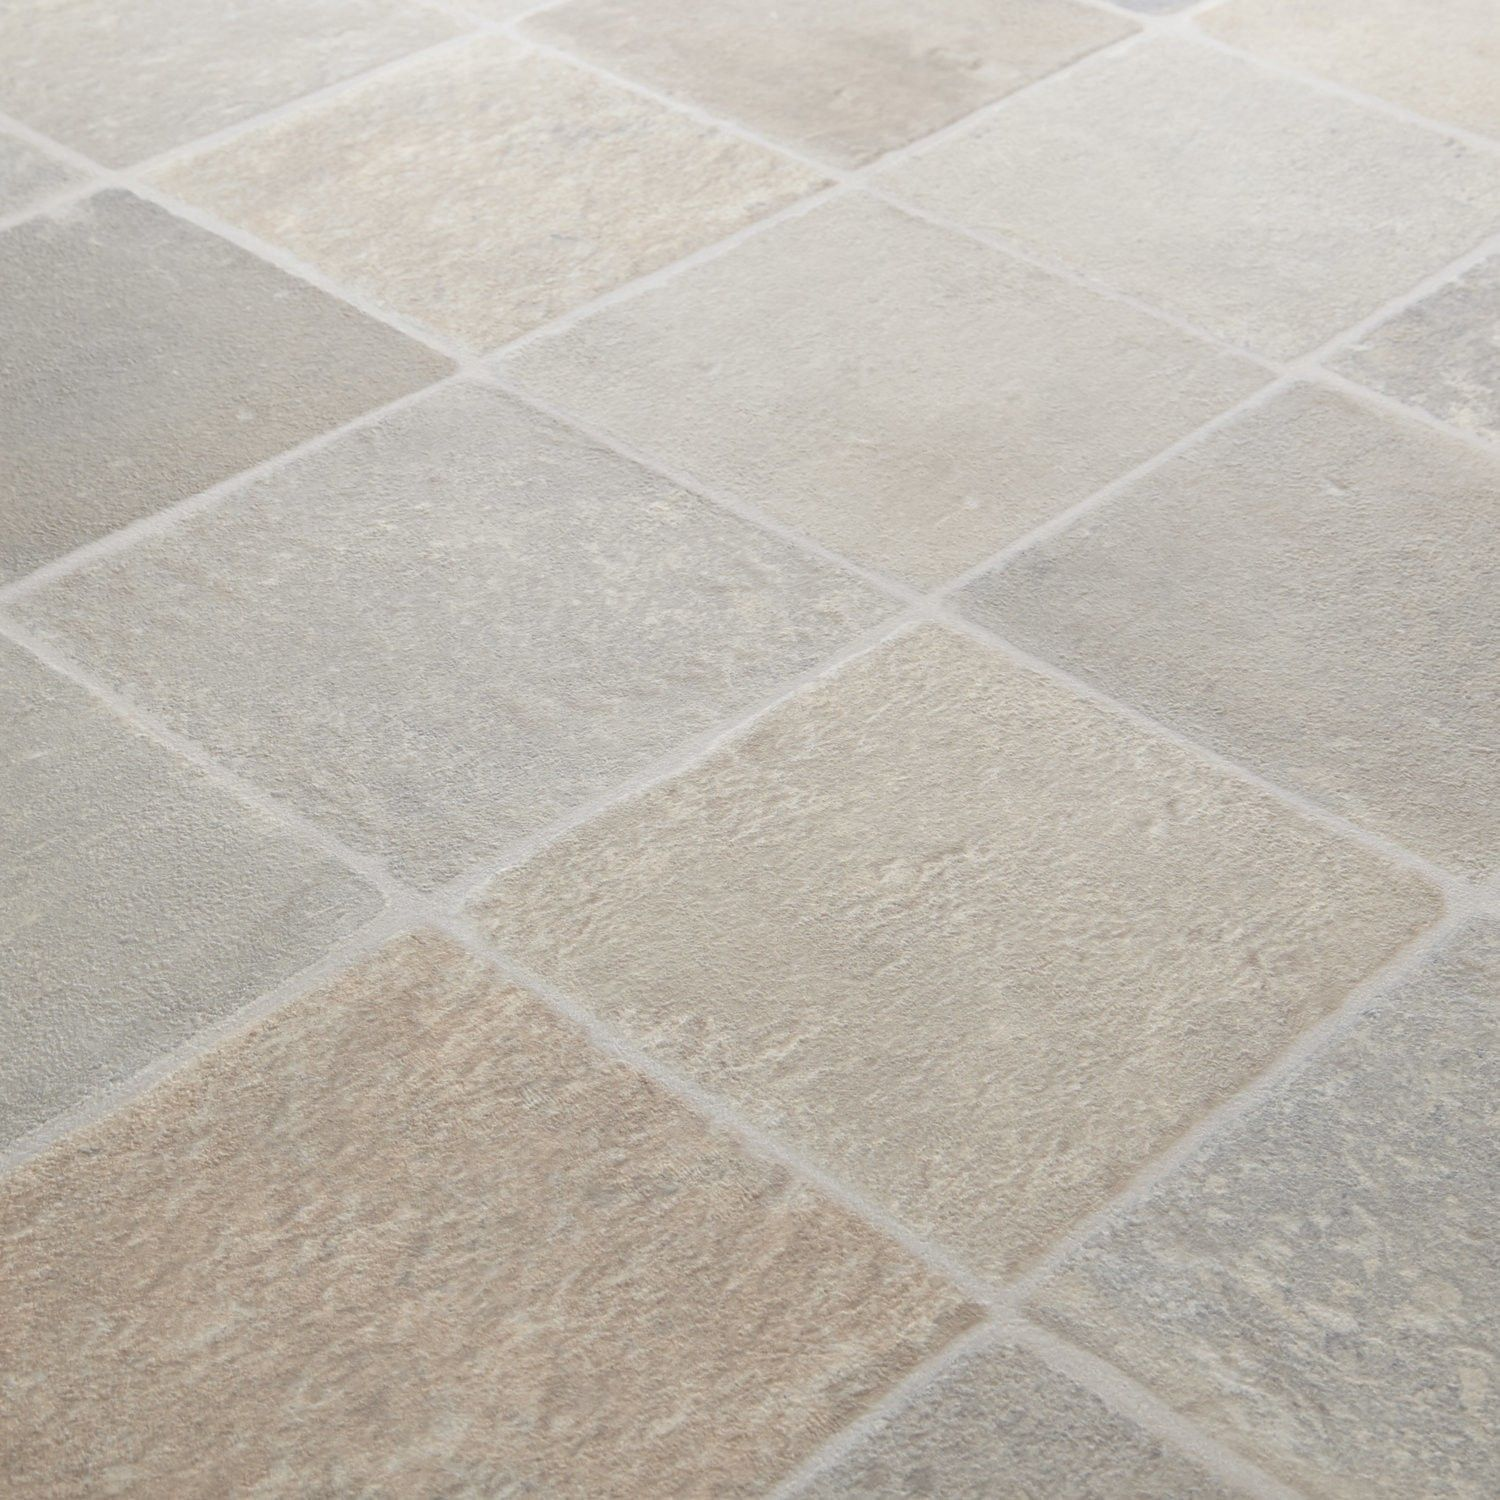 Sandstone Kitchen Floor Tiles 1199 Rhino Classic Cottage Beige Grey Stone Tile Effect Vinyl